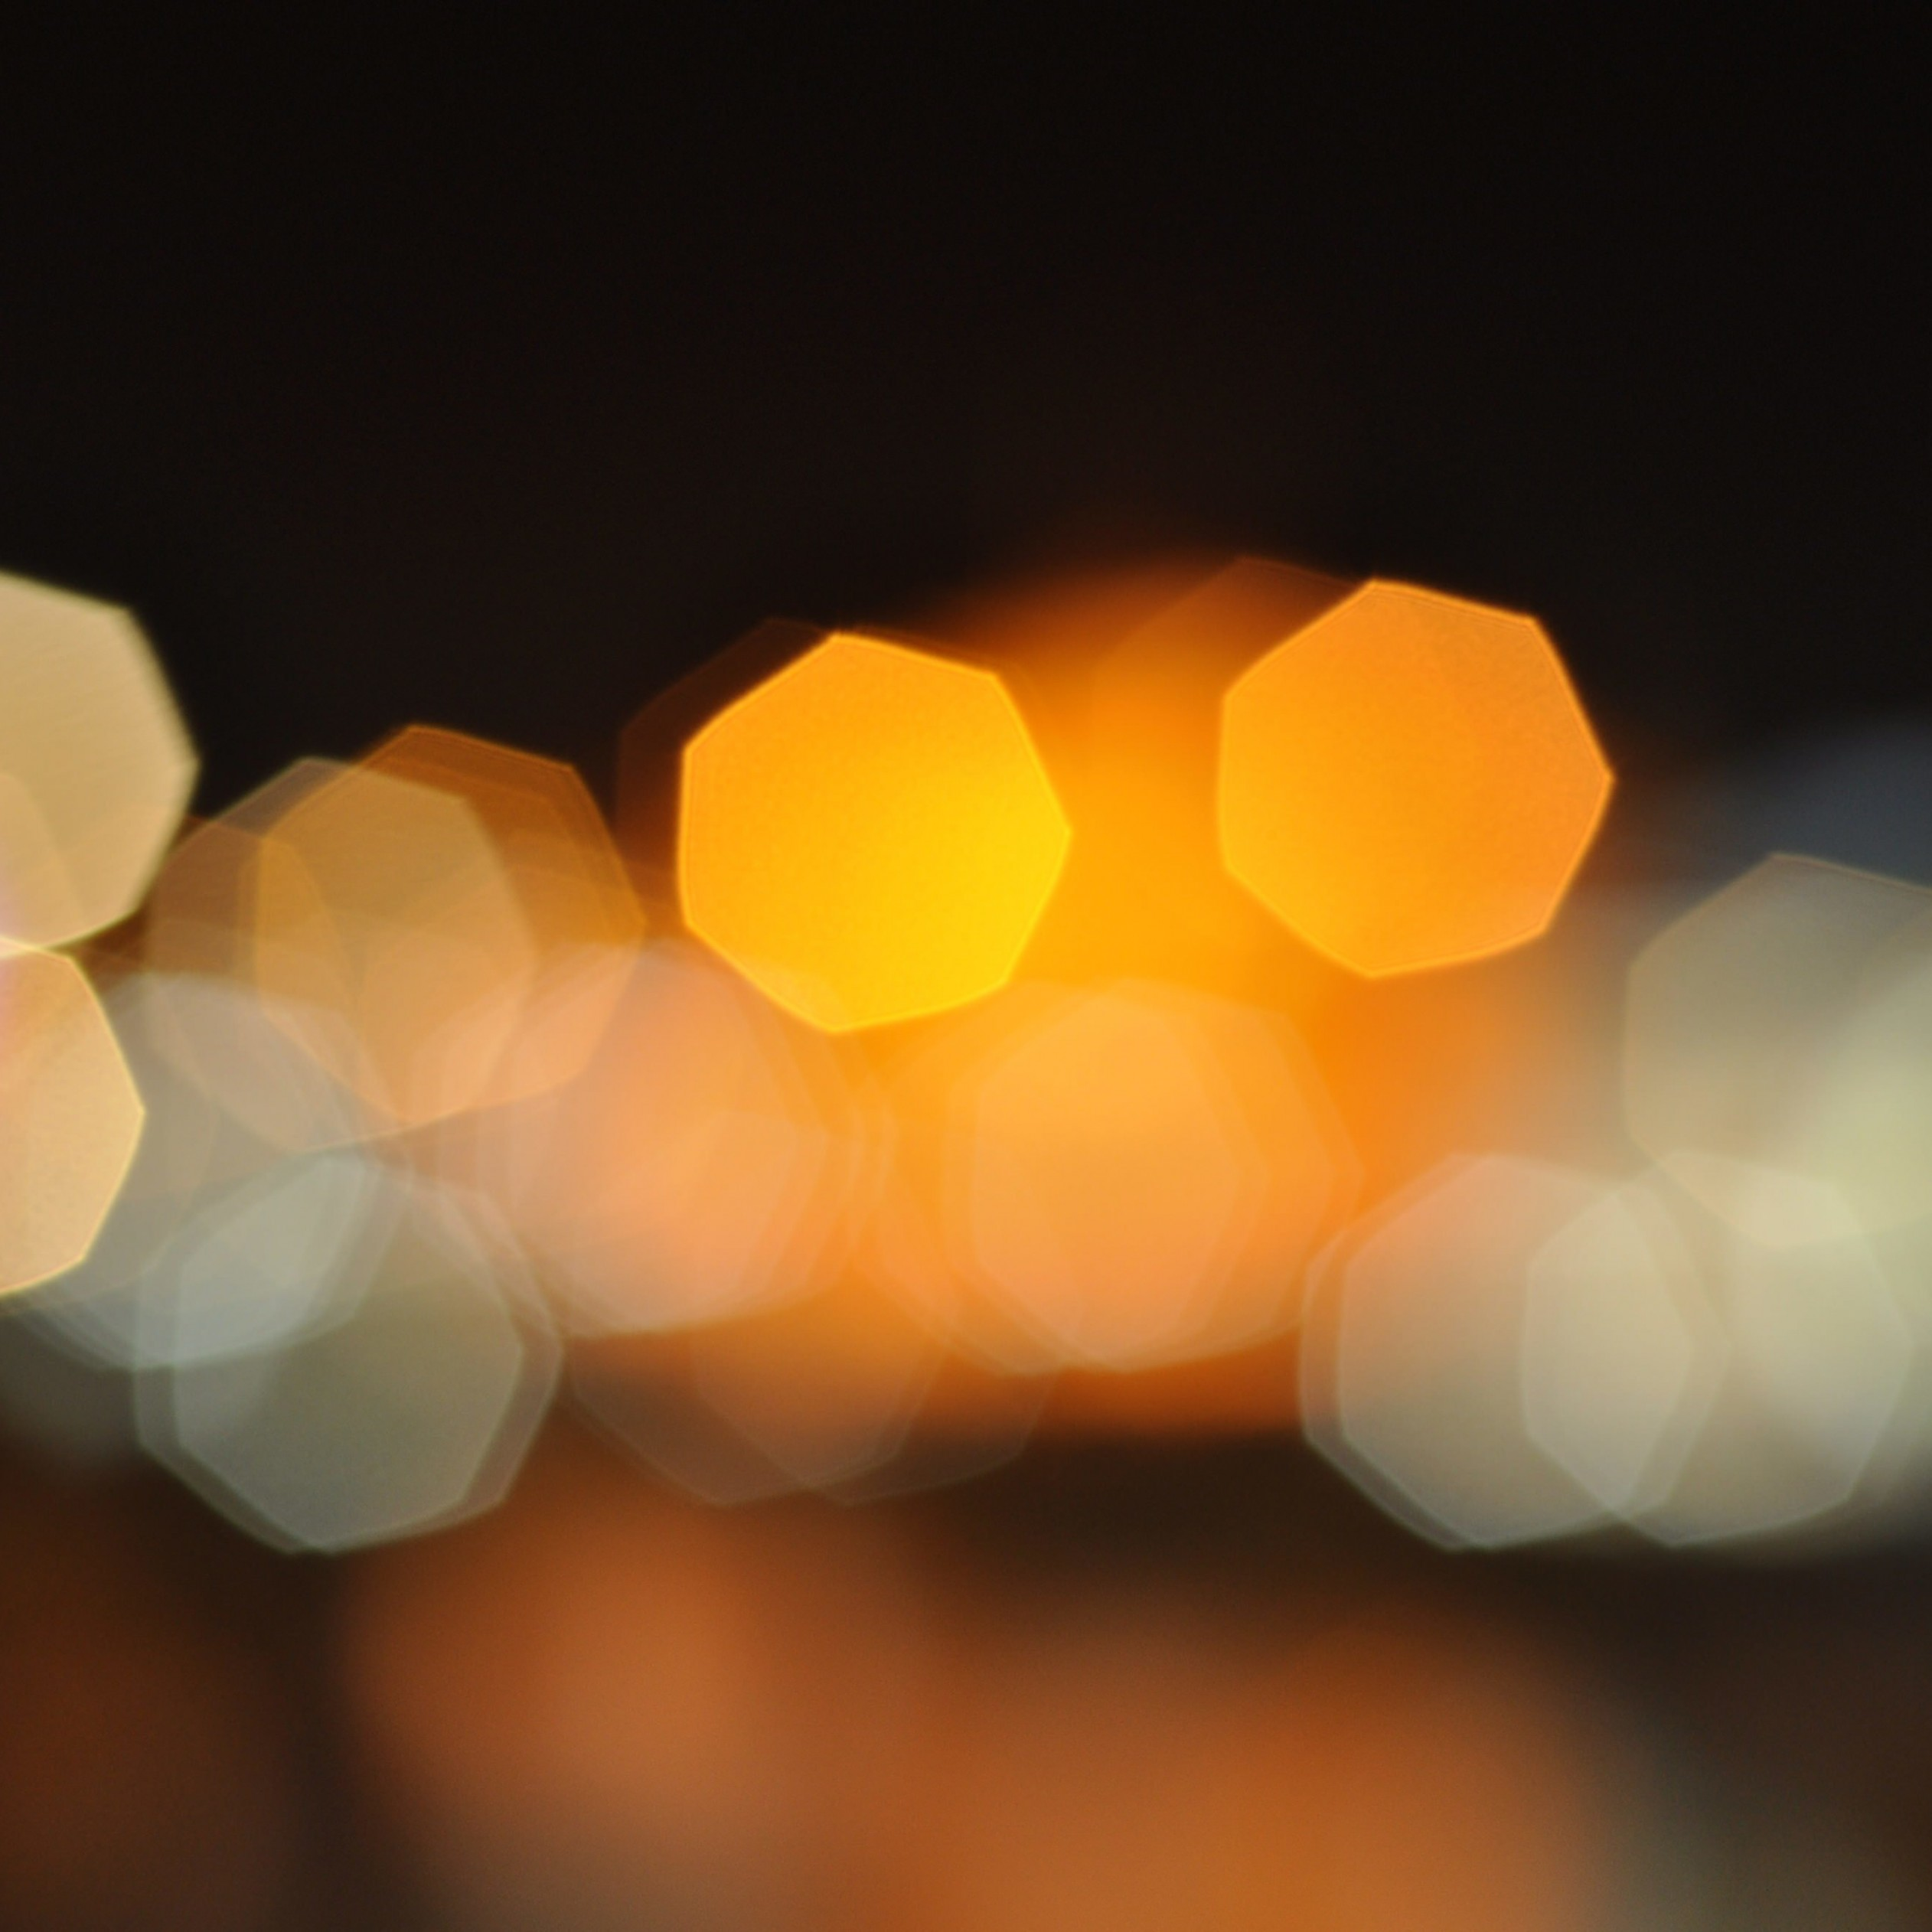 Blurred City Lights Wallpaper for Apple iPad 4